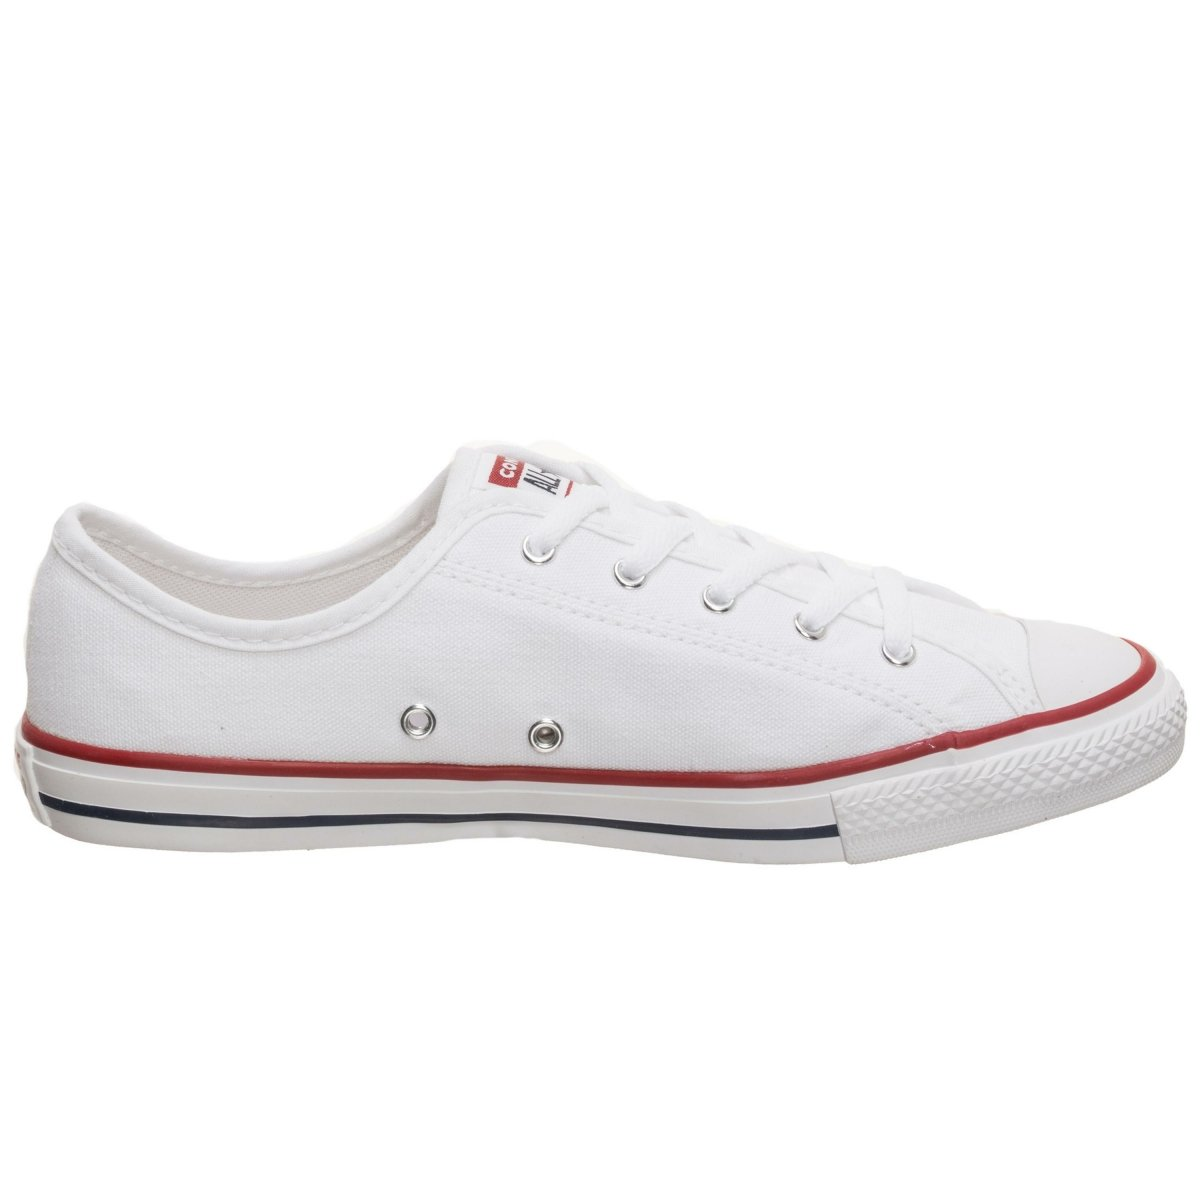 Converse Chuck Taylor All Dainty Star Ox in weiss 564981C 102 | everysize